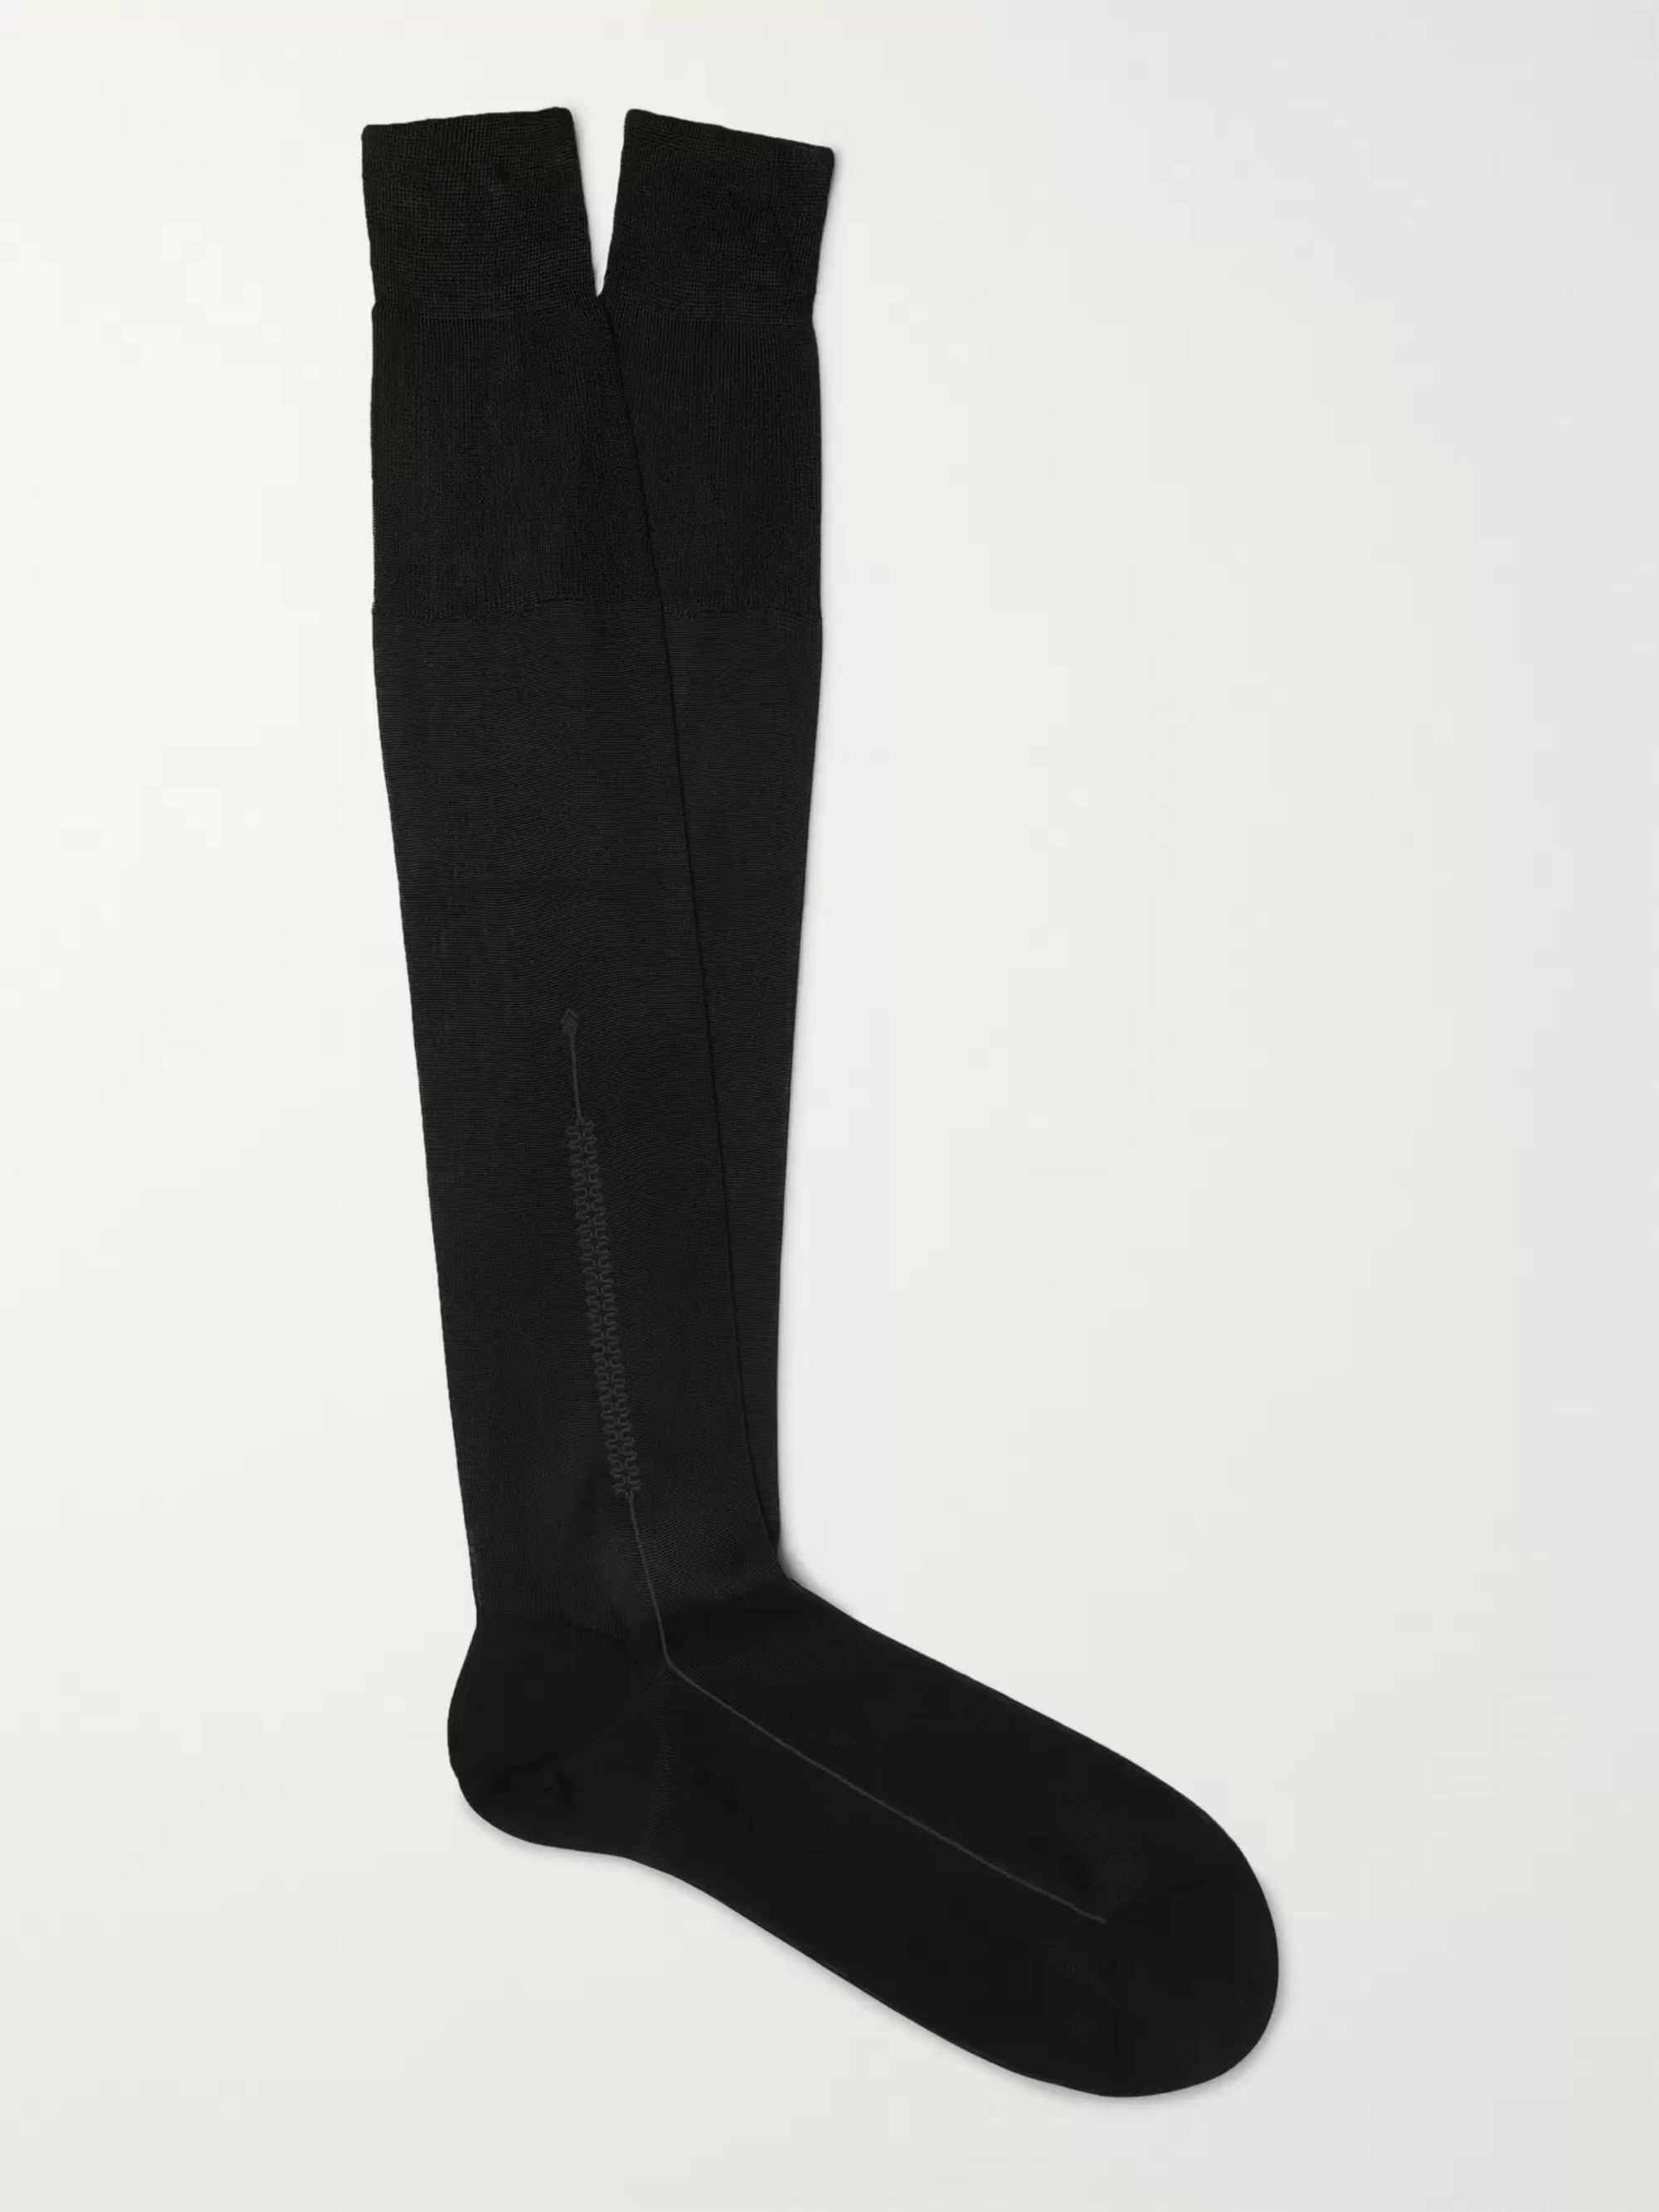 TOM FORD Silk and Cotton-Blend Socks